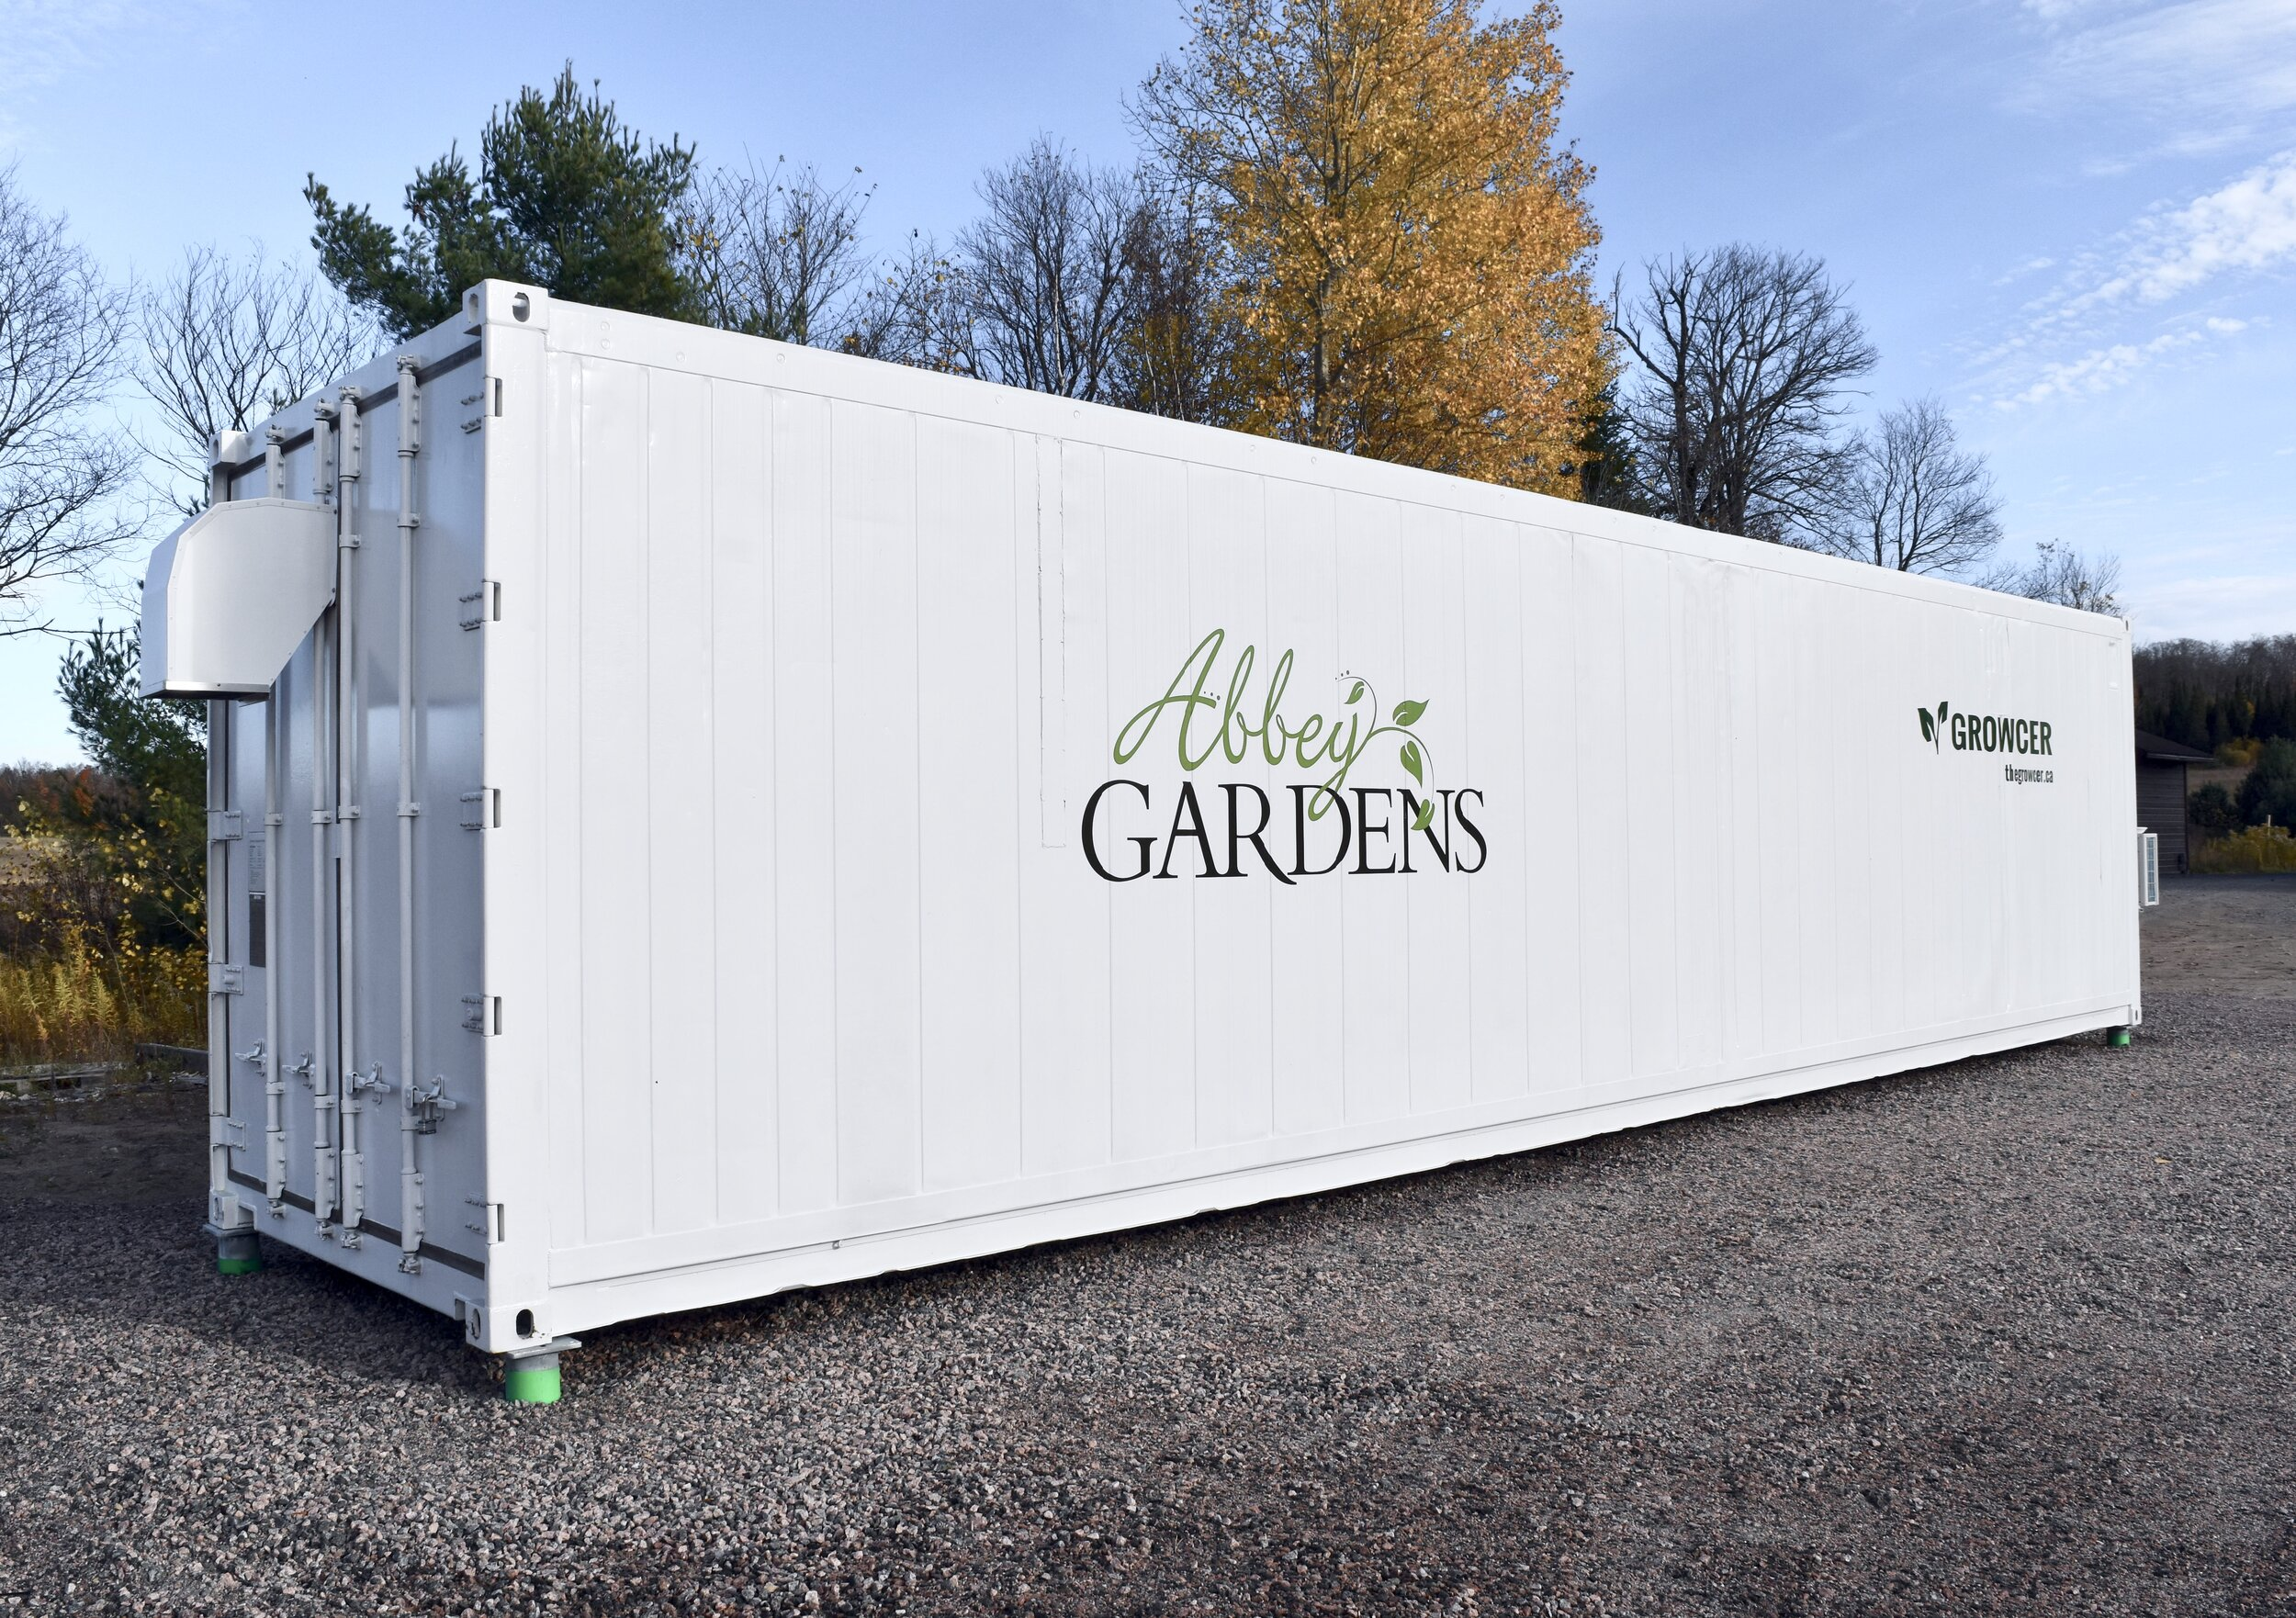 The Growcer system will allow Abbey Gardens to extend its growing season to be all year-round.  Photo credit: Morgan Hector.